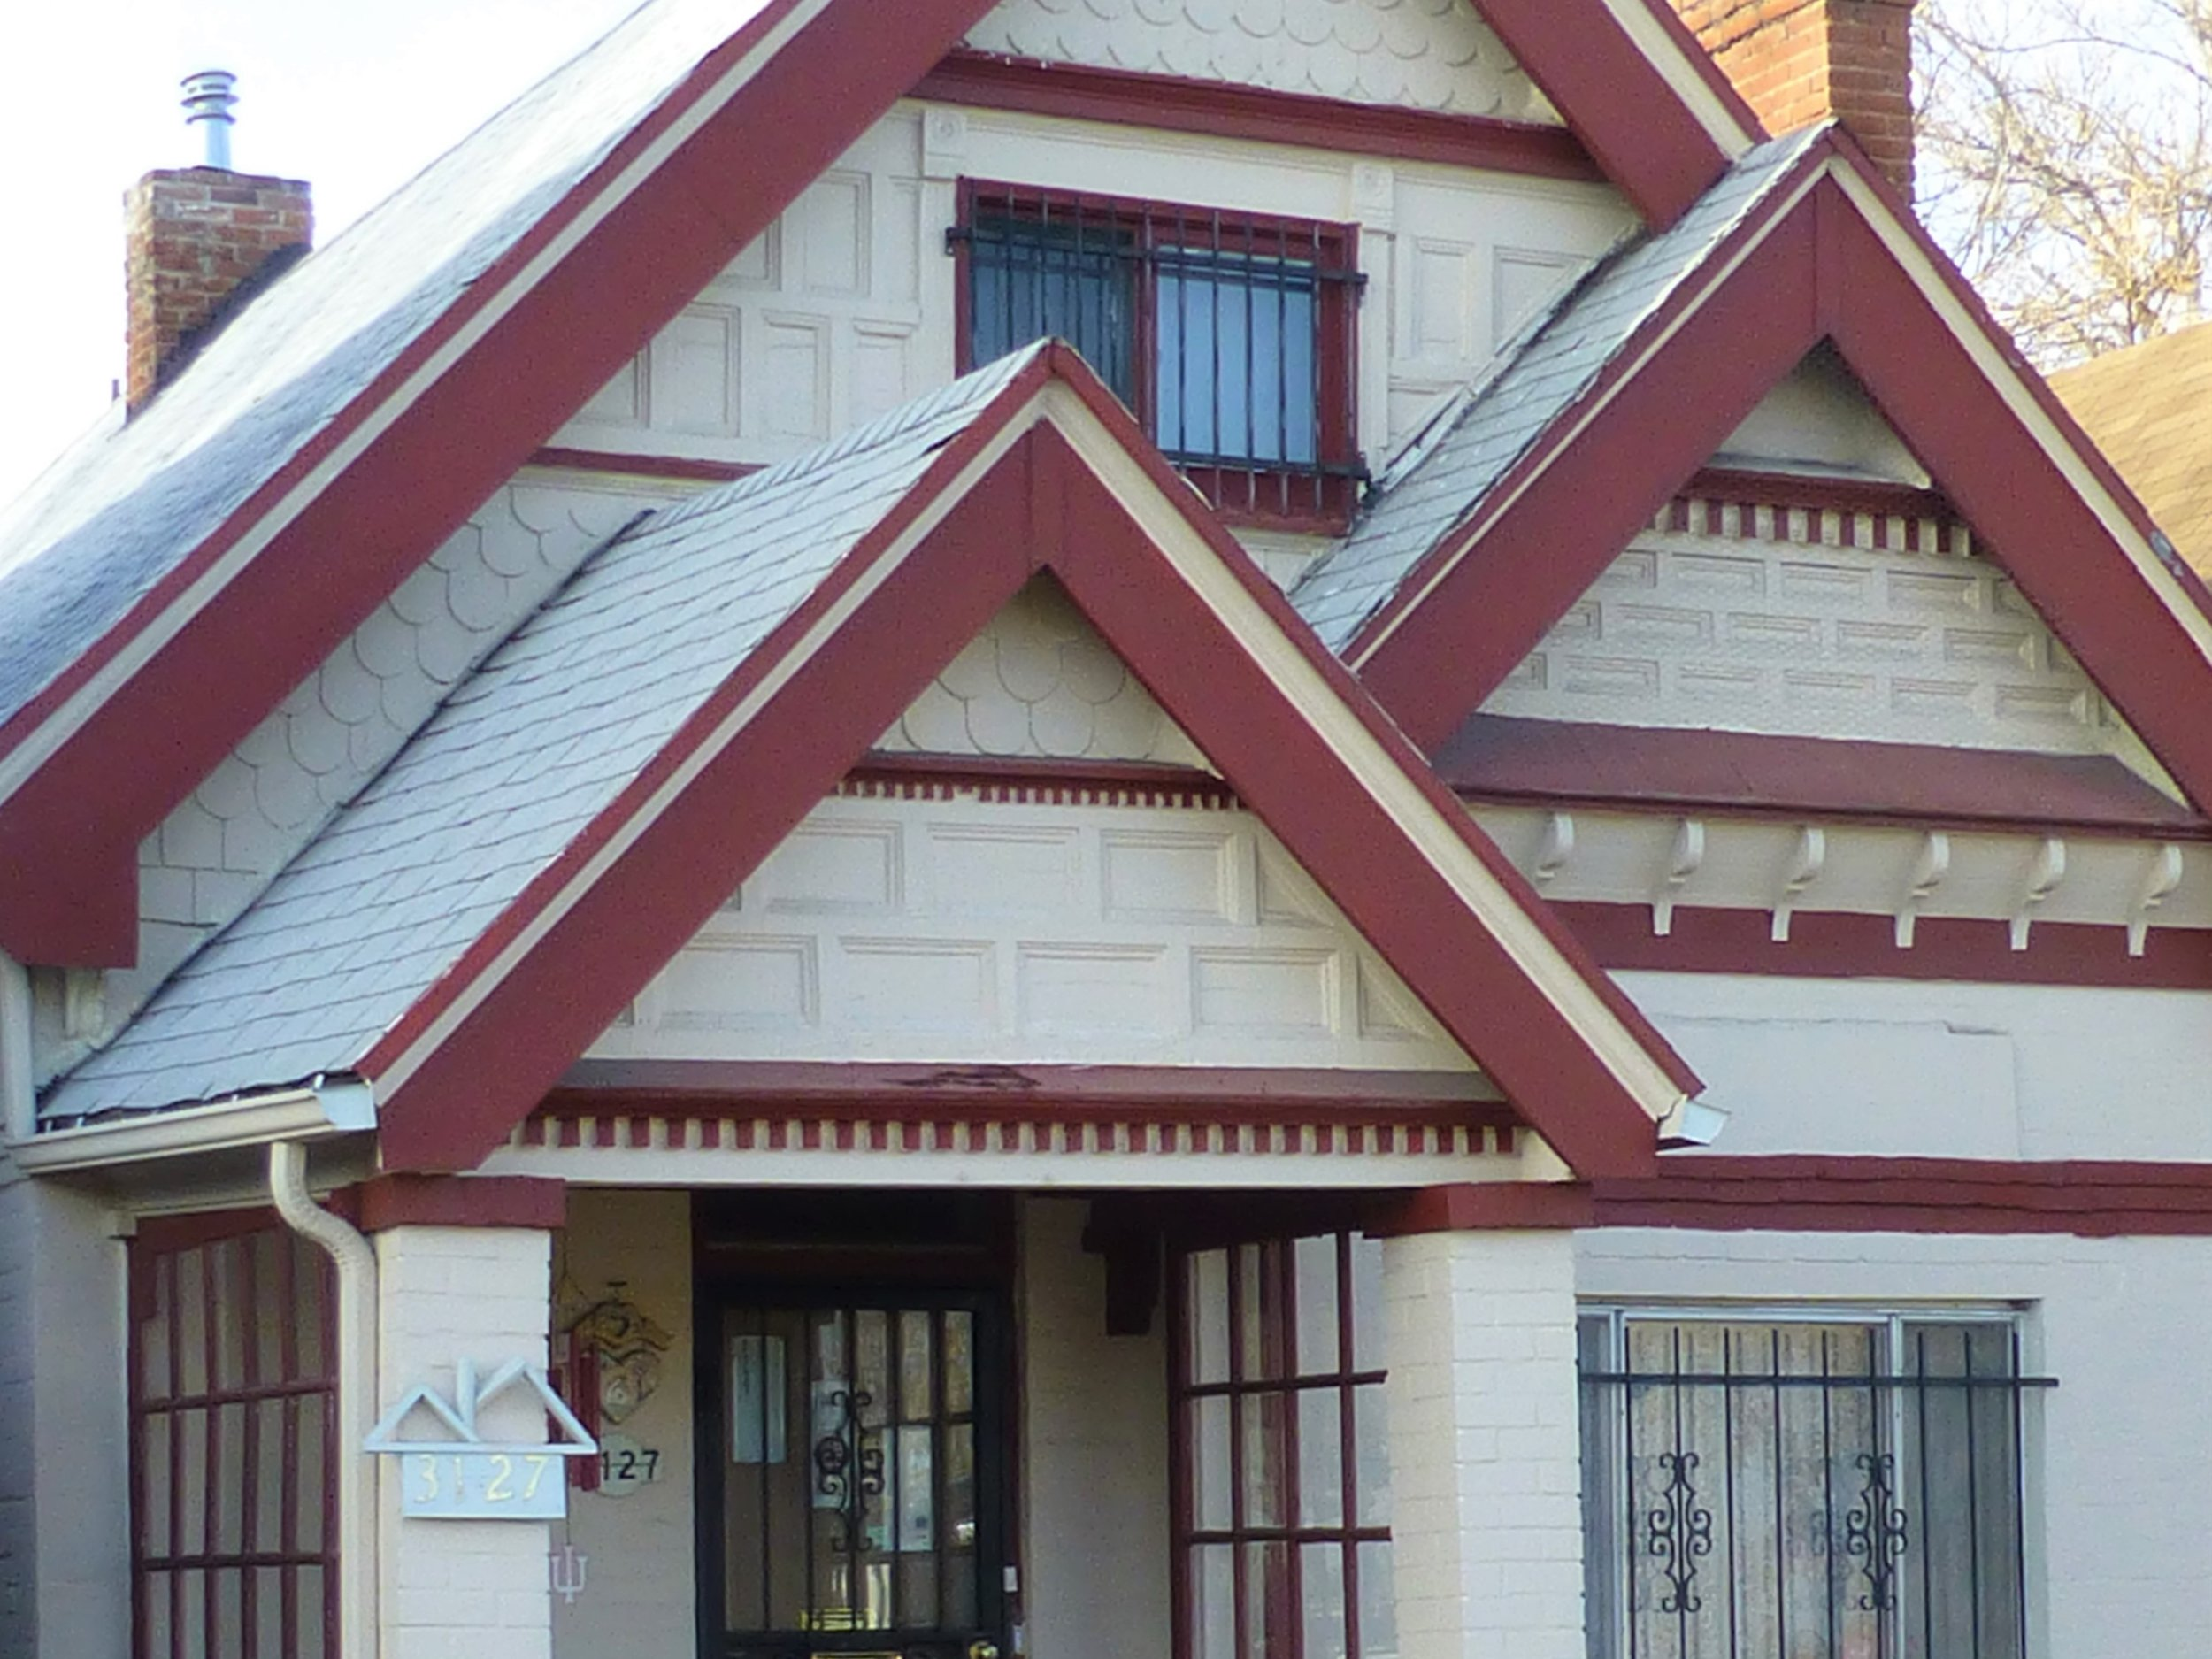 Patterned wooden ornamentation on gable ends is a hallmark of the Queen Anne style house.